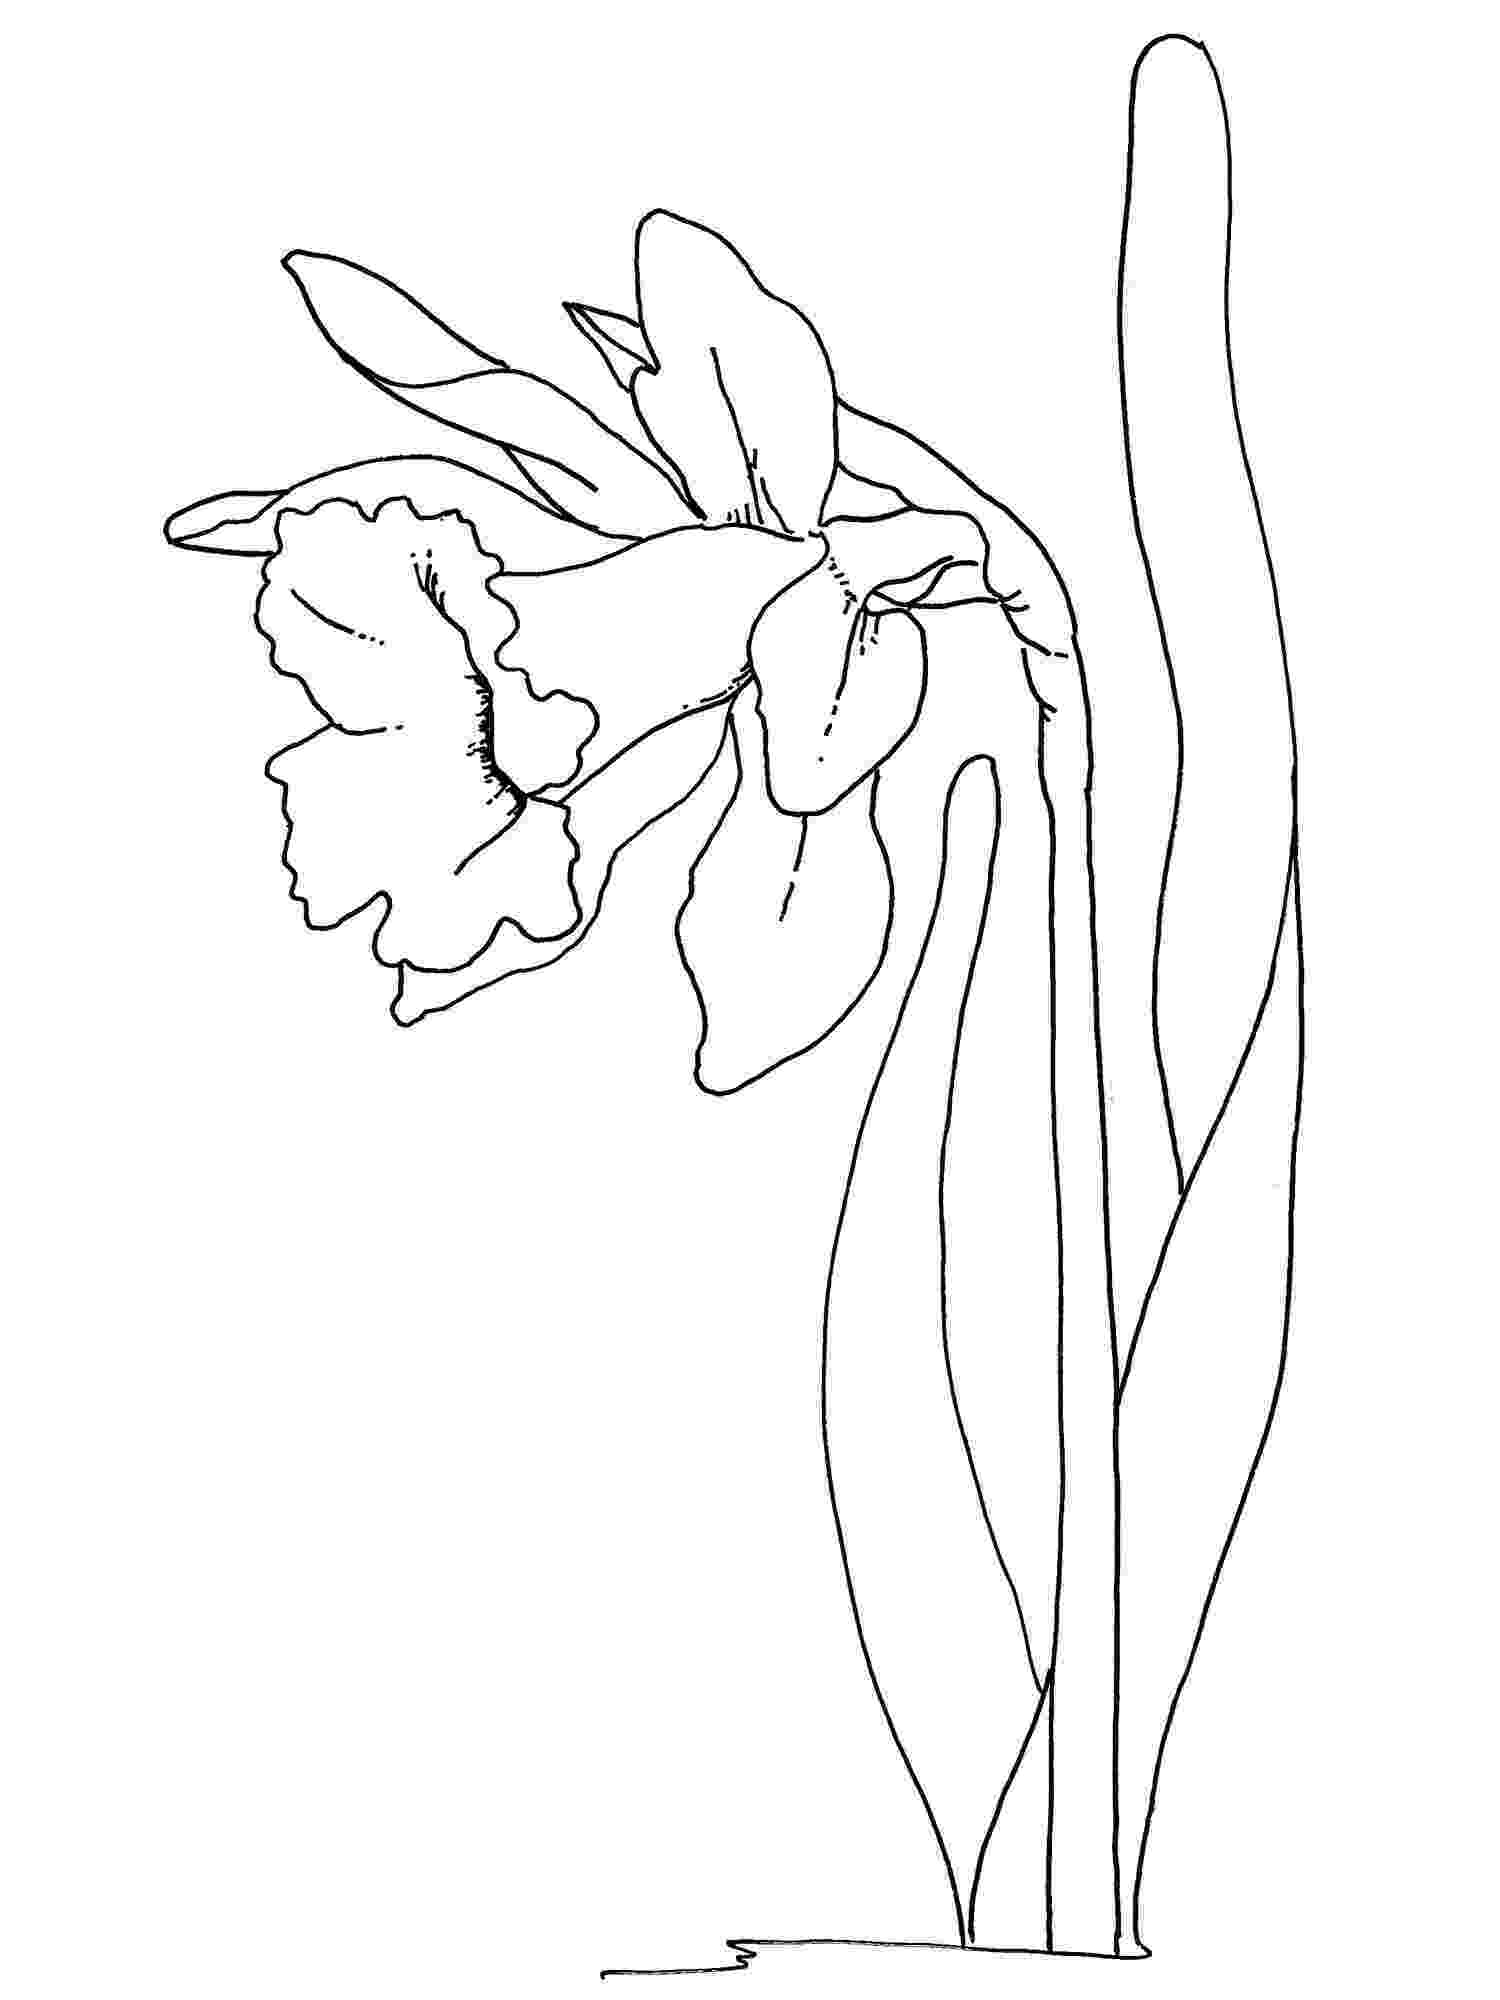 daffodil color daffodil coloring pages color daffodil 1 1